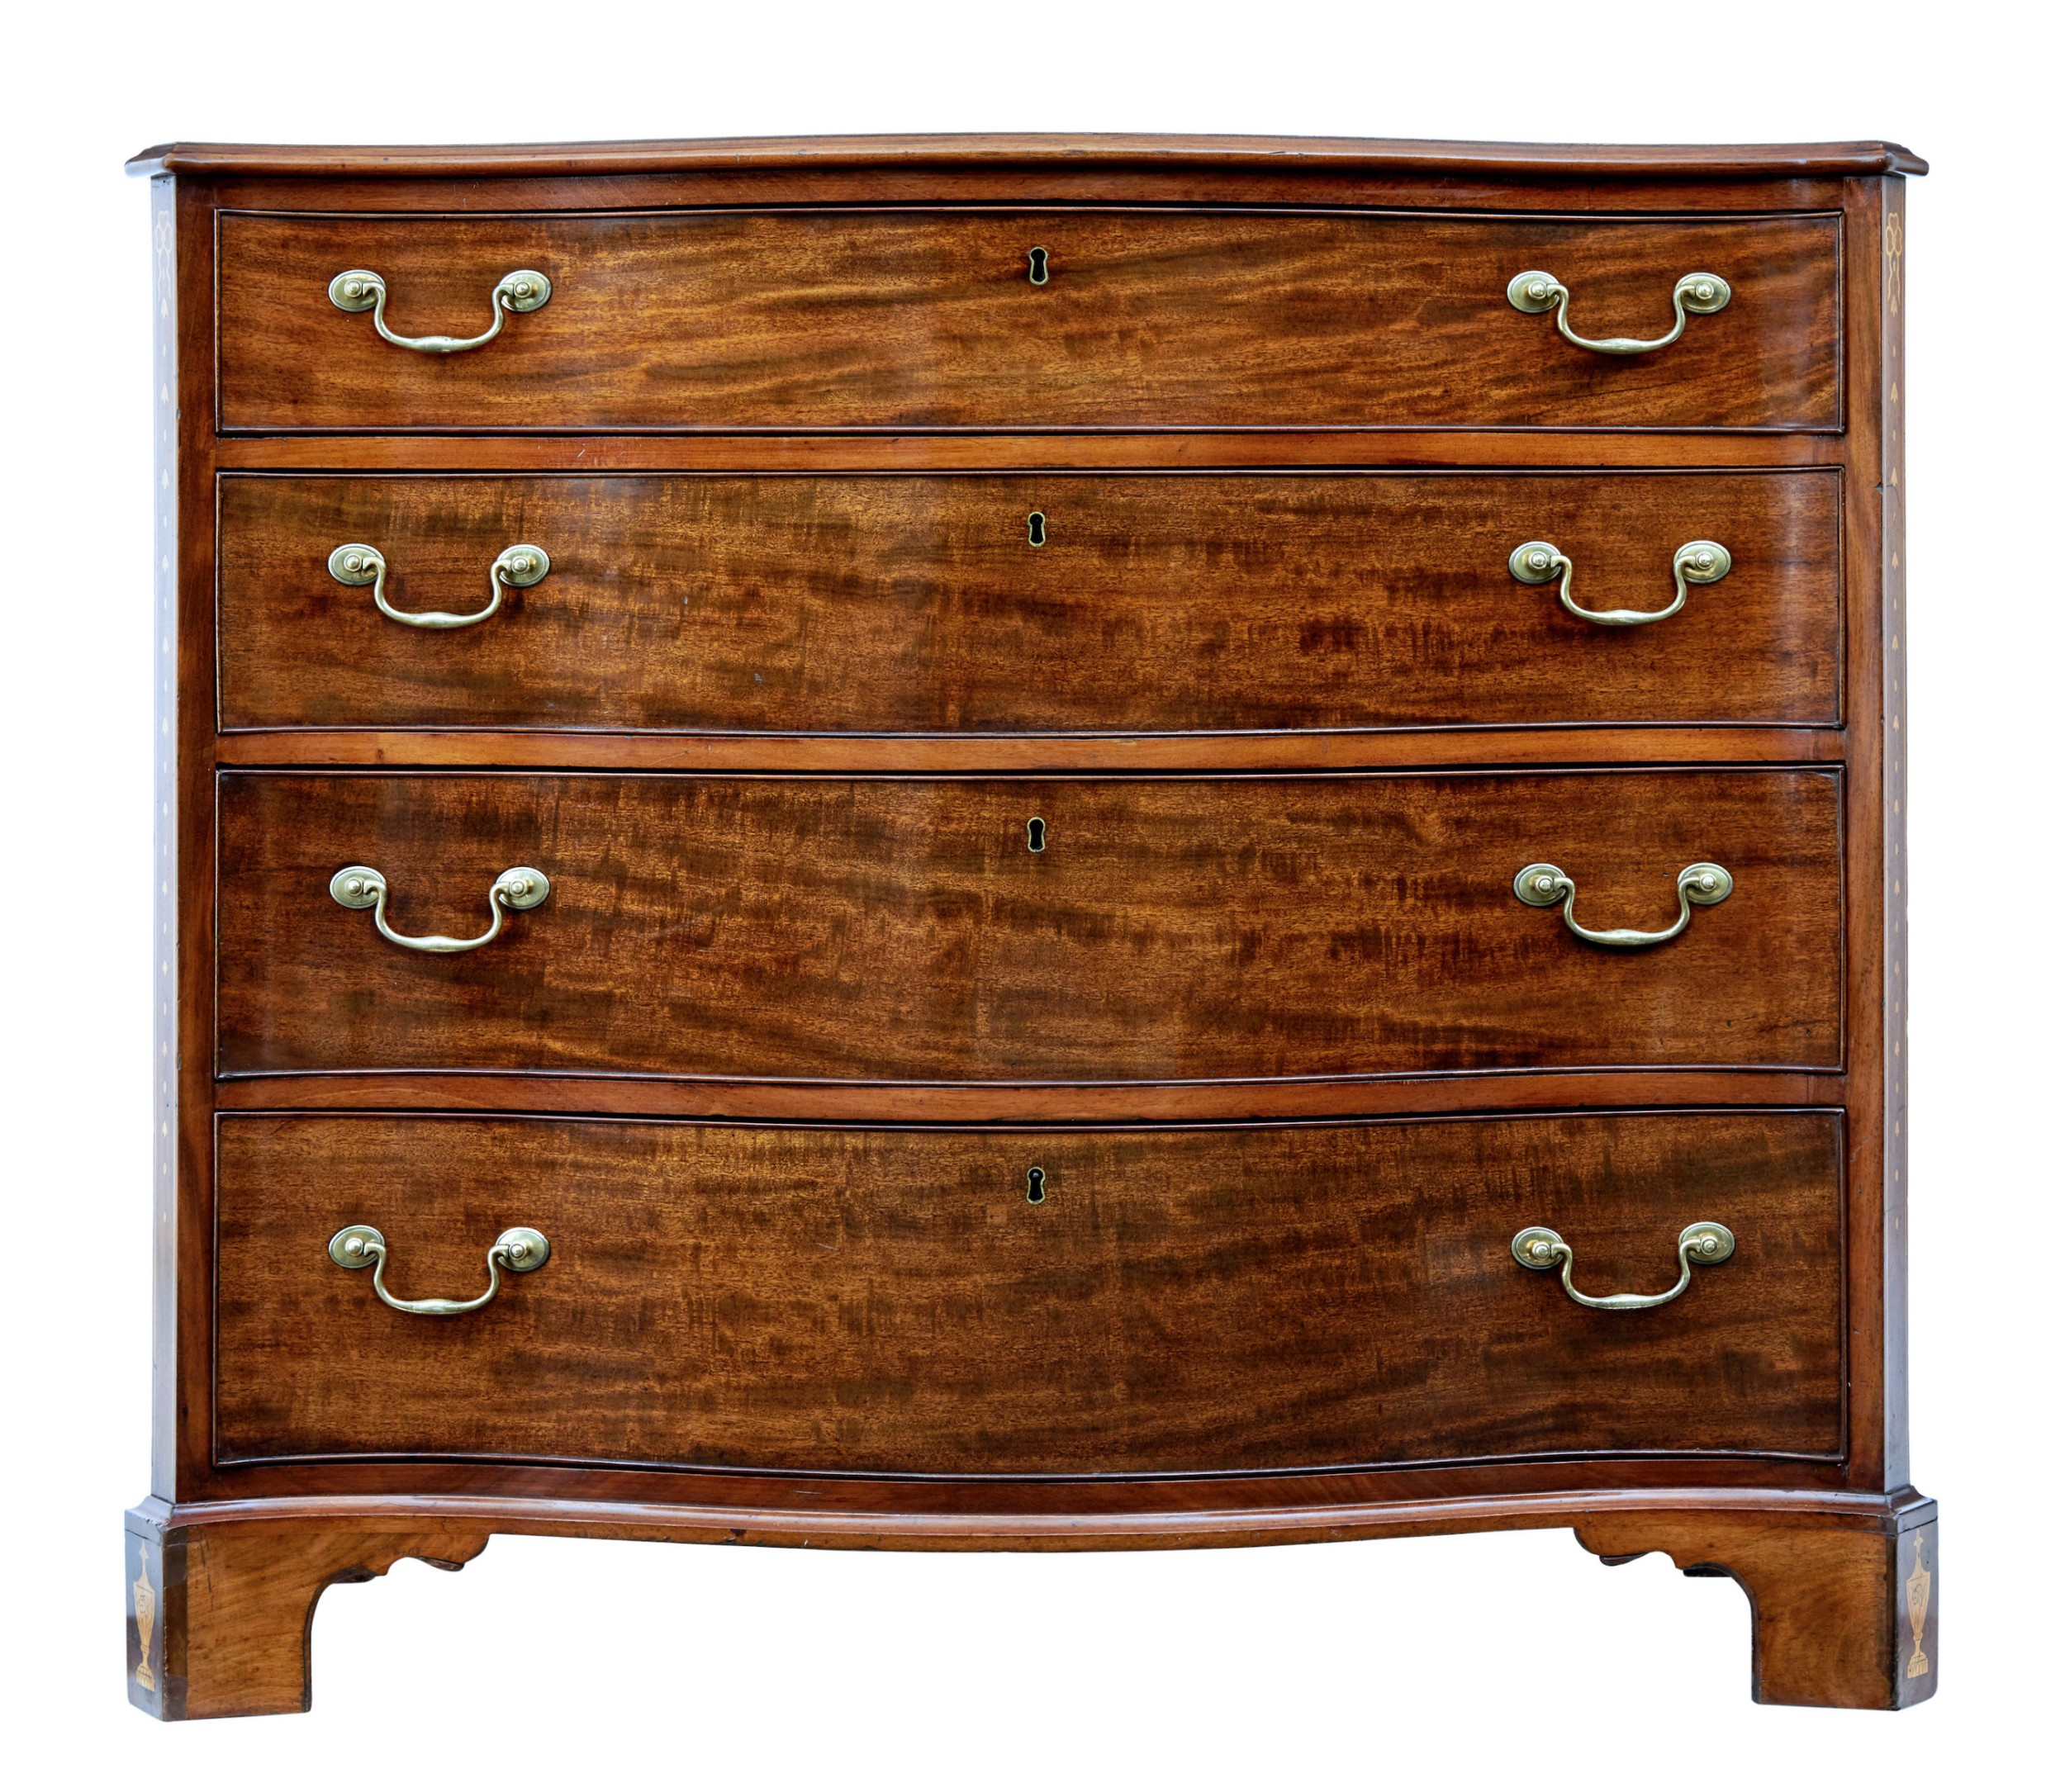 mid 19th century mahogany serpentine chest of drawers